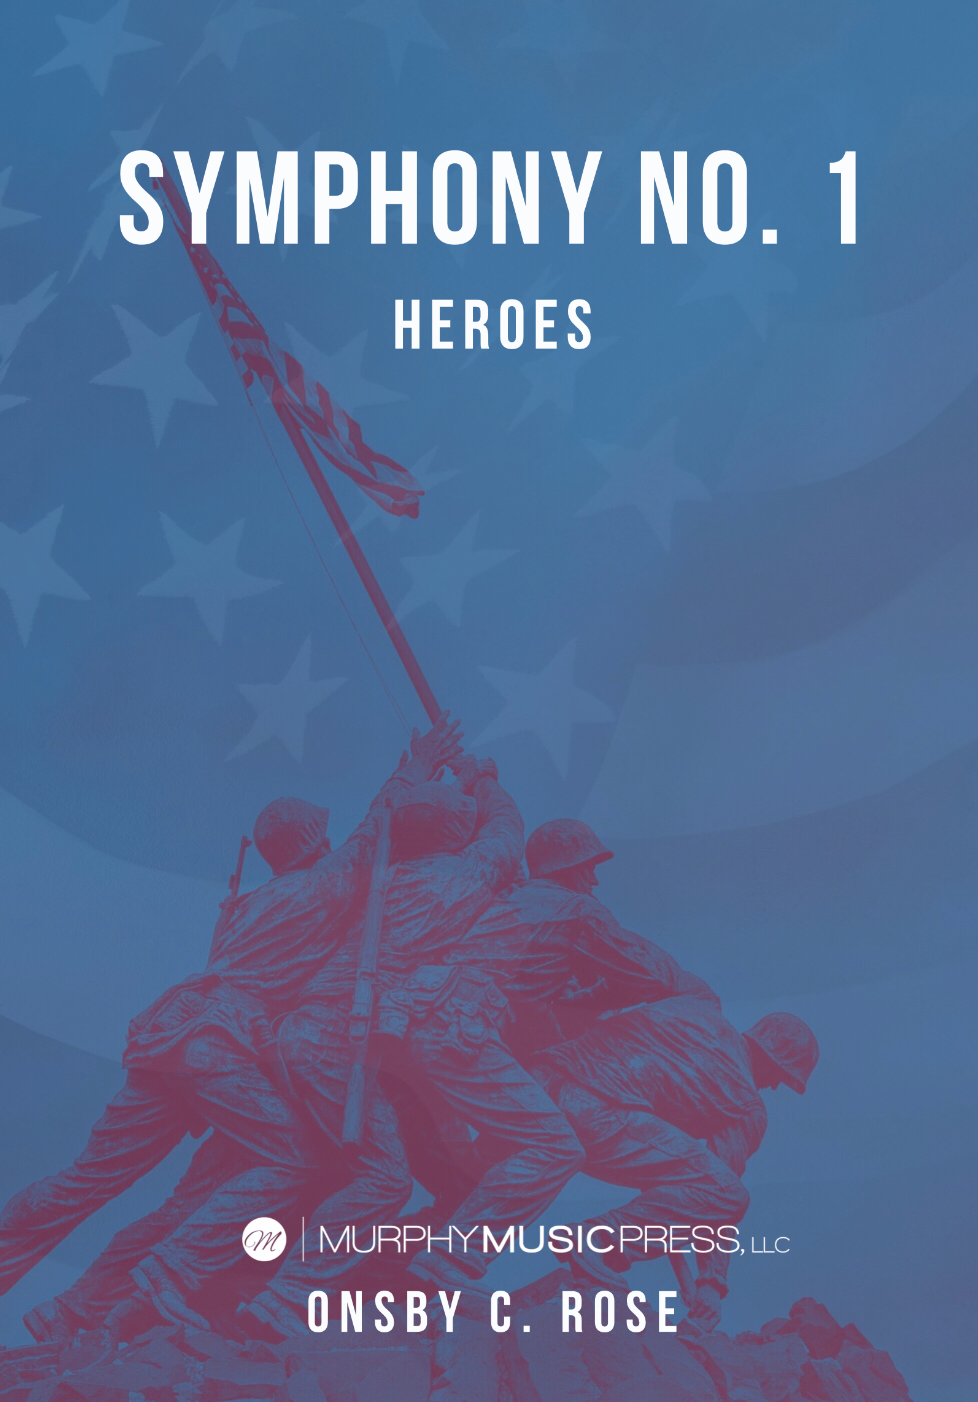 Symphony No, 1: Heroes (Score Only) by Onsby C. Rose